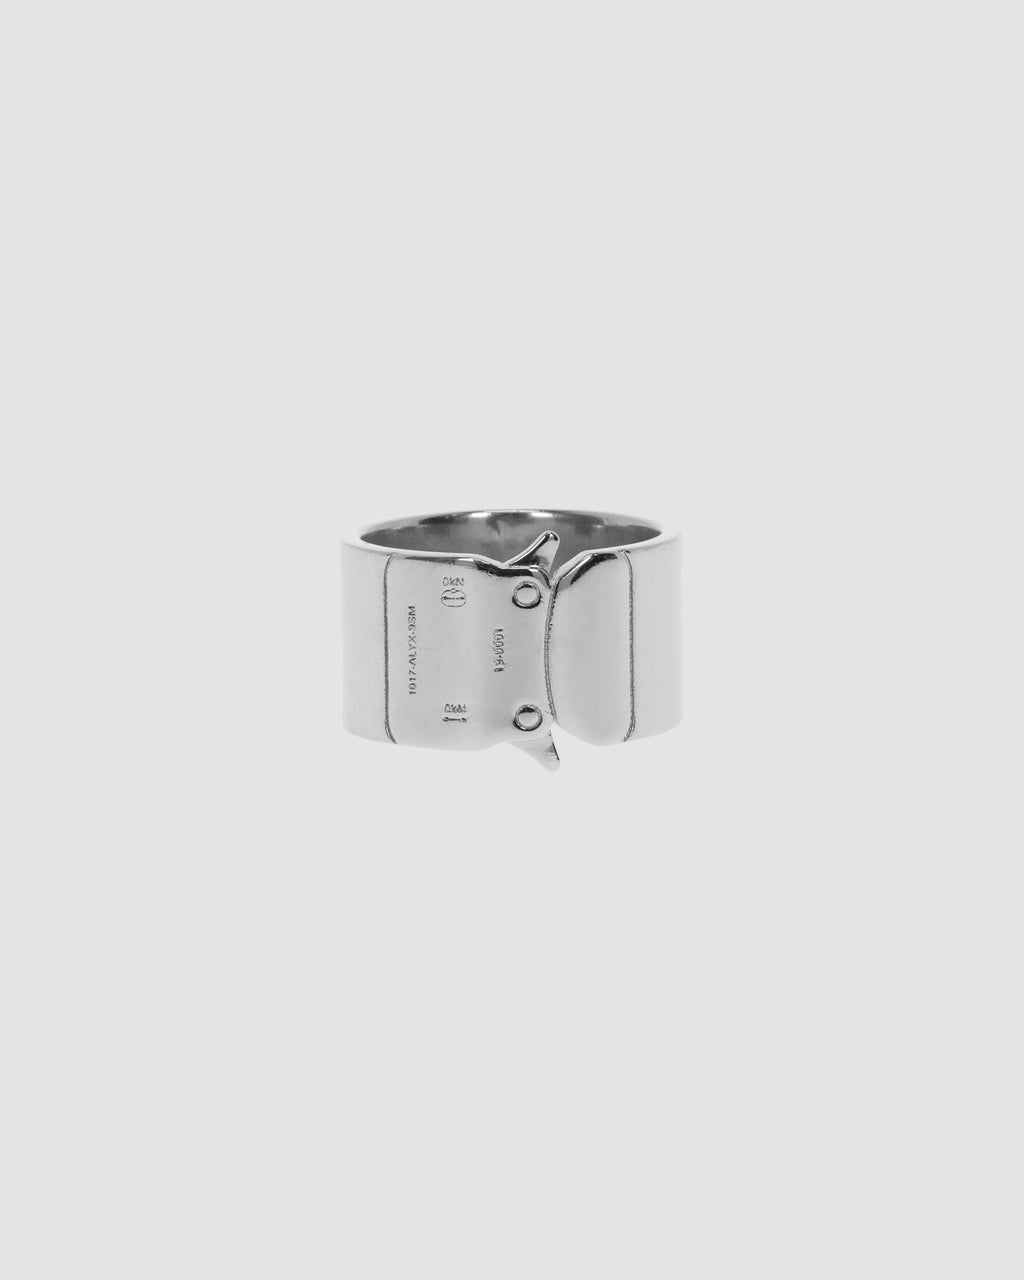 1017 ALYX 9SM | BUCKLE RING | Jewellery | Accessories, Google Shopping, JEWELLERY, jewelry, Man, S20, S20 Drop II, SILVER, UNISEX, Woman